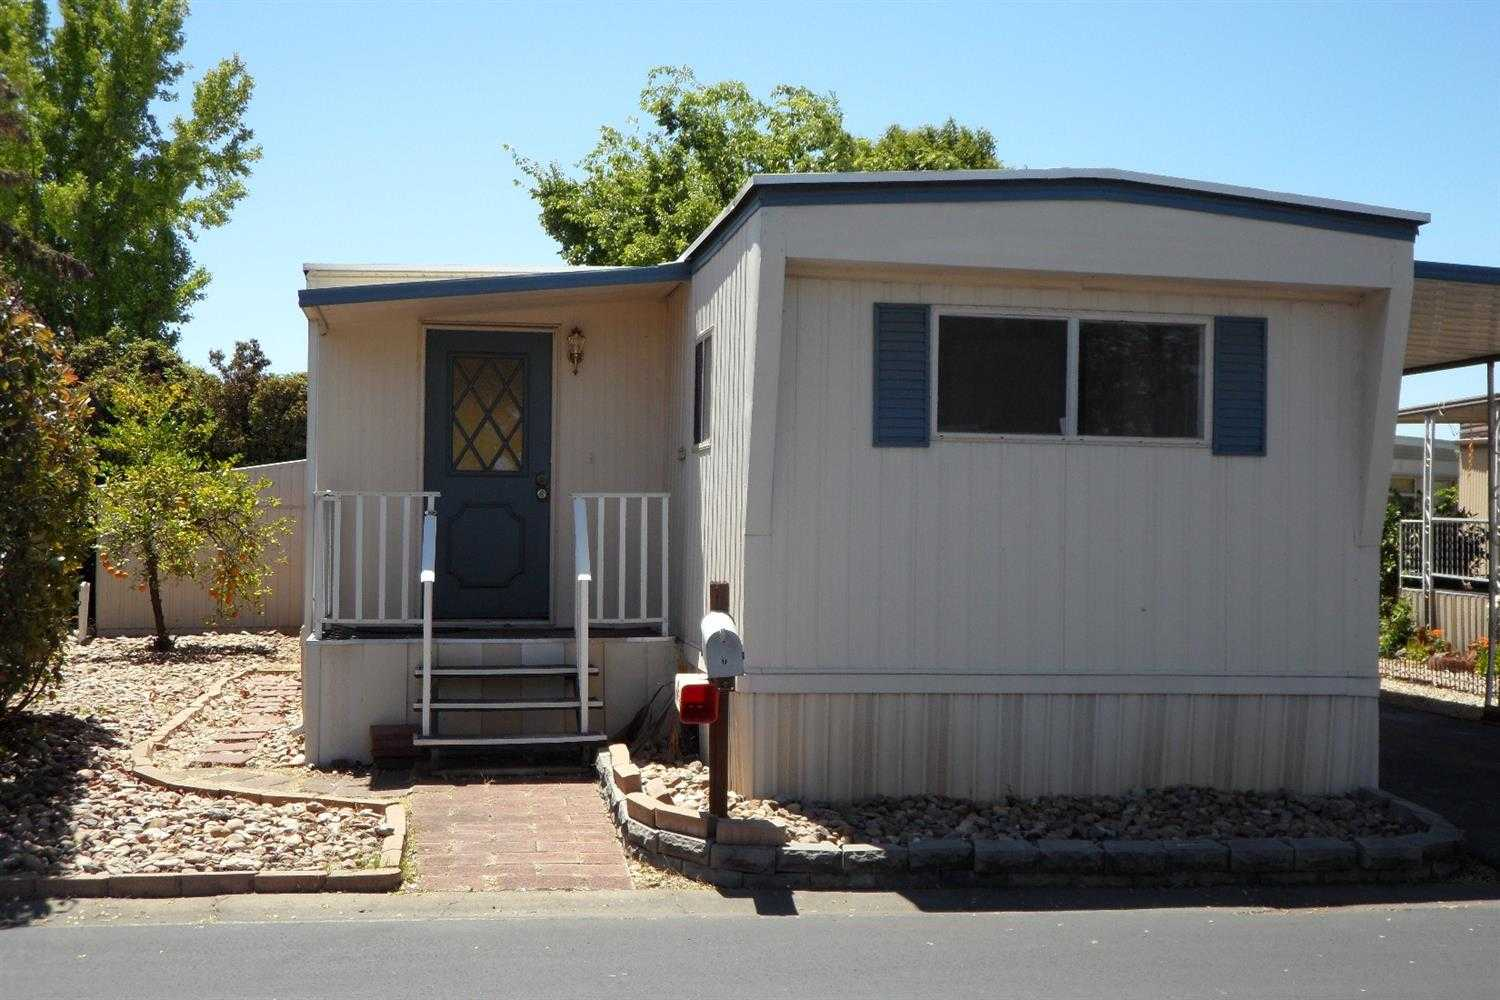 $31,000 - 2Br/2Ba -  for Sale in Sacramento